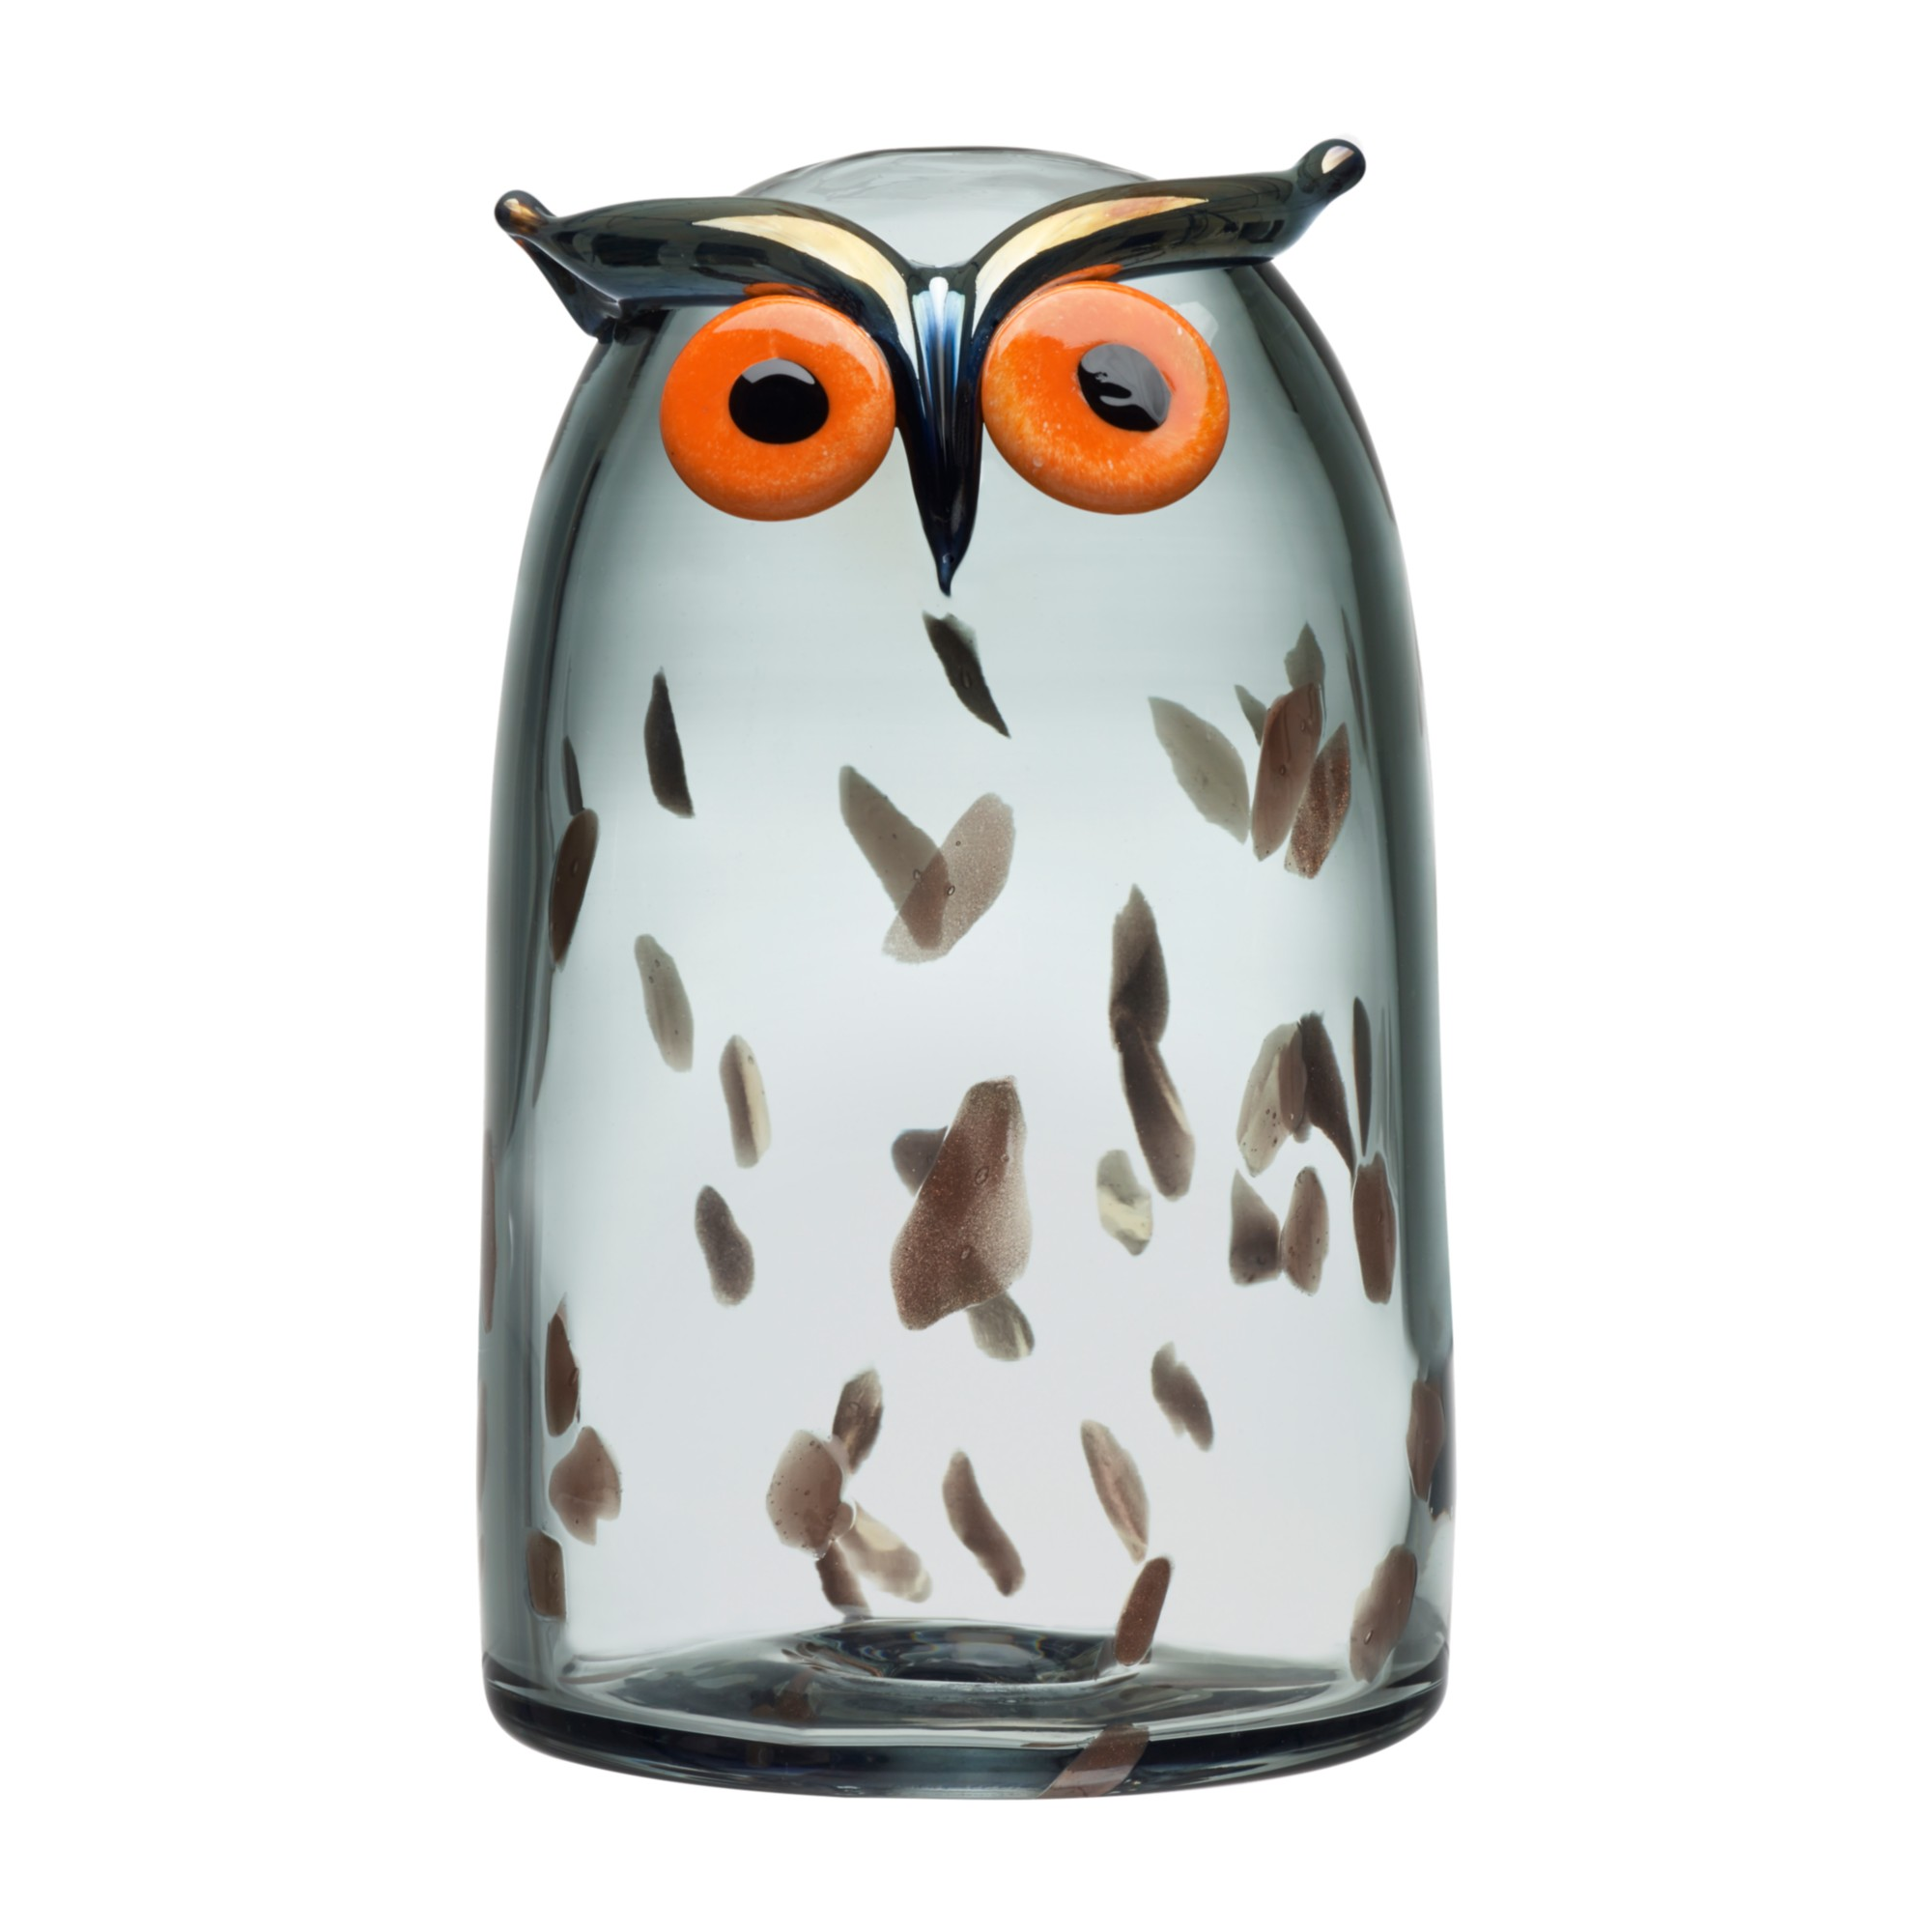 Iittala Long Eared Owl Oiva Toikka